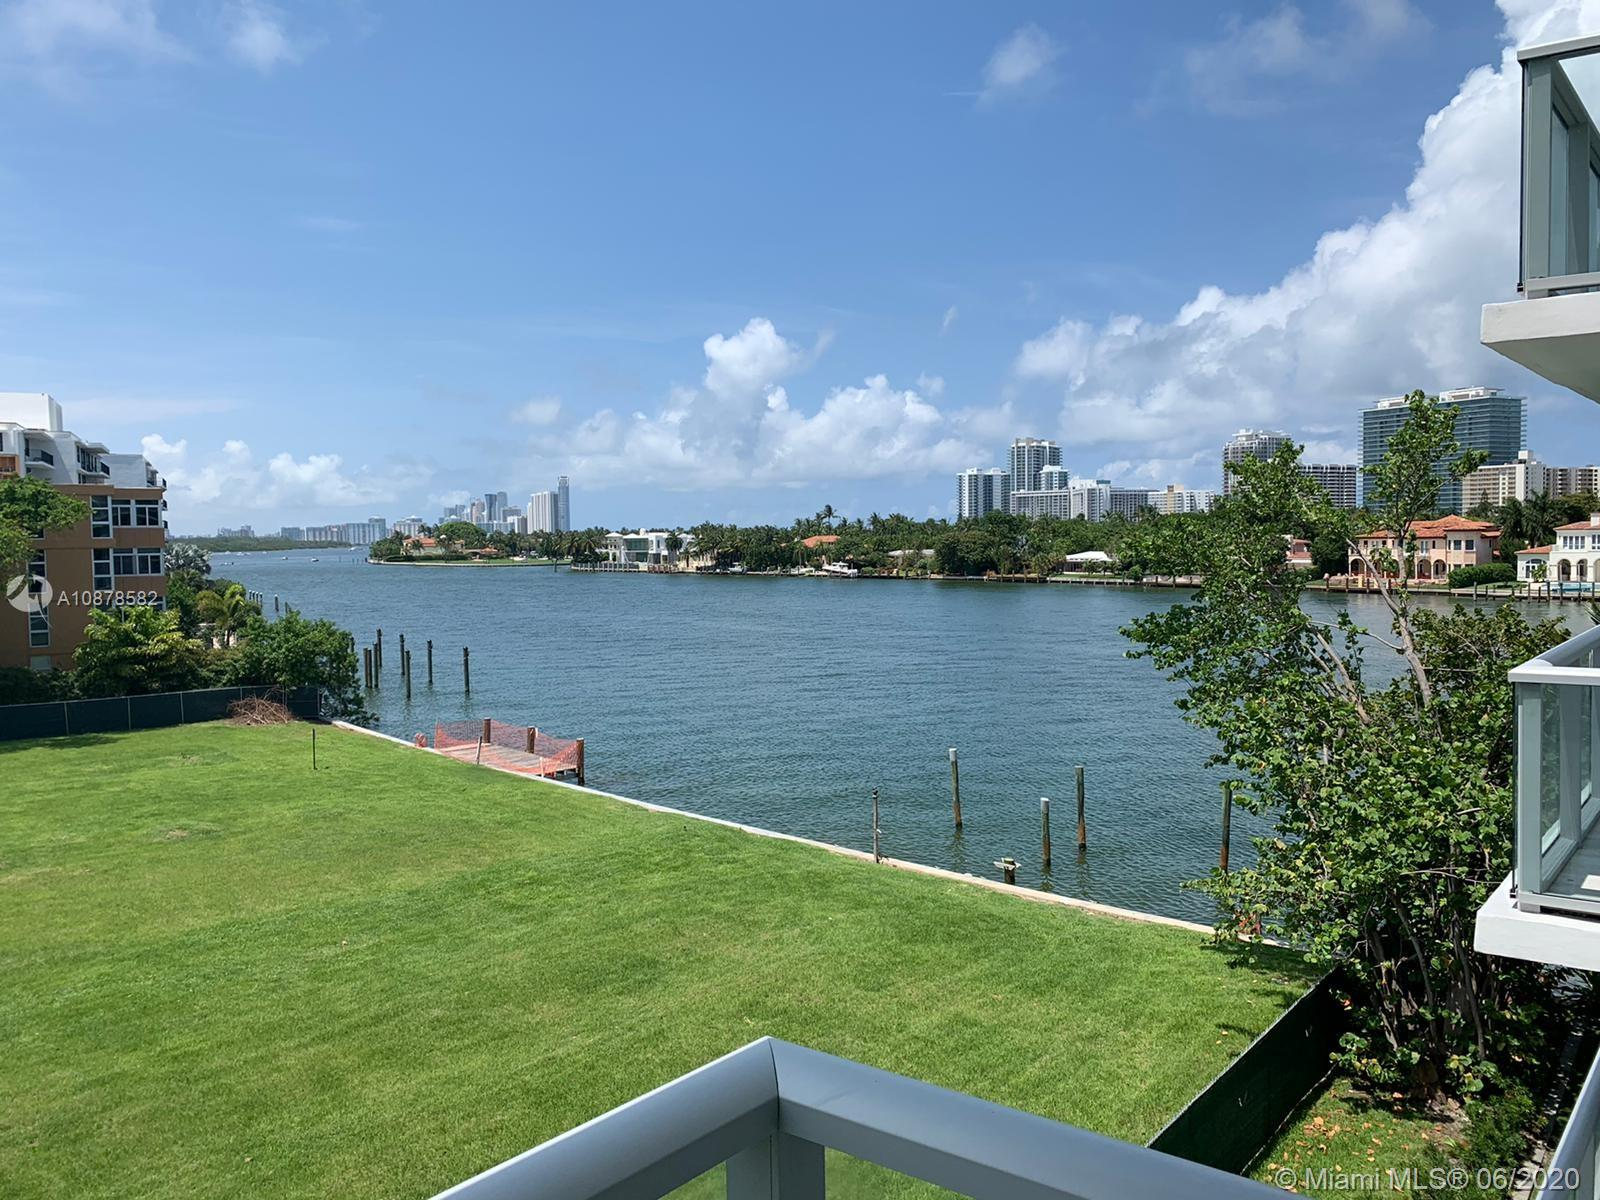 Beautiful unit , only 3 units per floor. The unit is rented, $2600 monthly. High efficiency A/C heating units, wraparound balcony , floor to ceiling sliding glass door in living spaces, tile floors, solar shades, walking closet. Gorgeous 365 roof top pool overlooking the water with panoramic water views, lounge area great for entertainment and a outdoor fitness area. Secure parking garage, 2 assigned parking spaces.